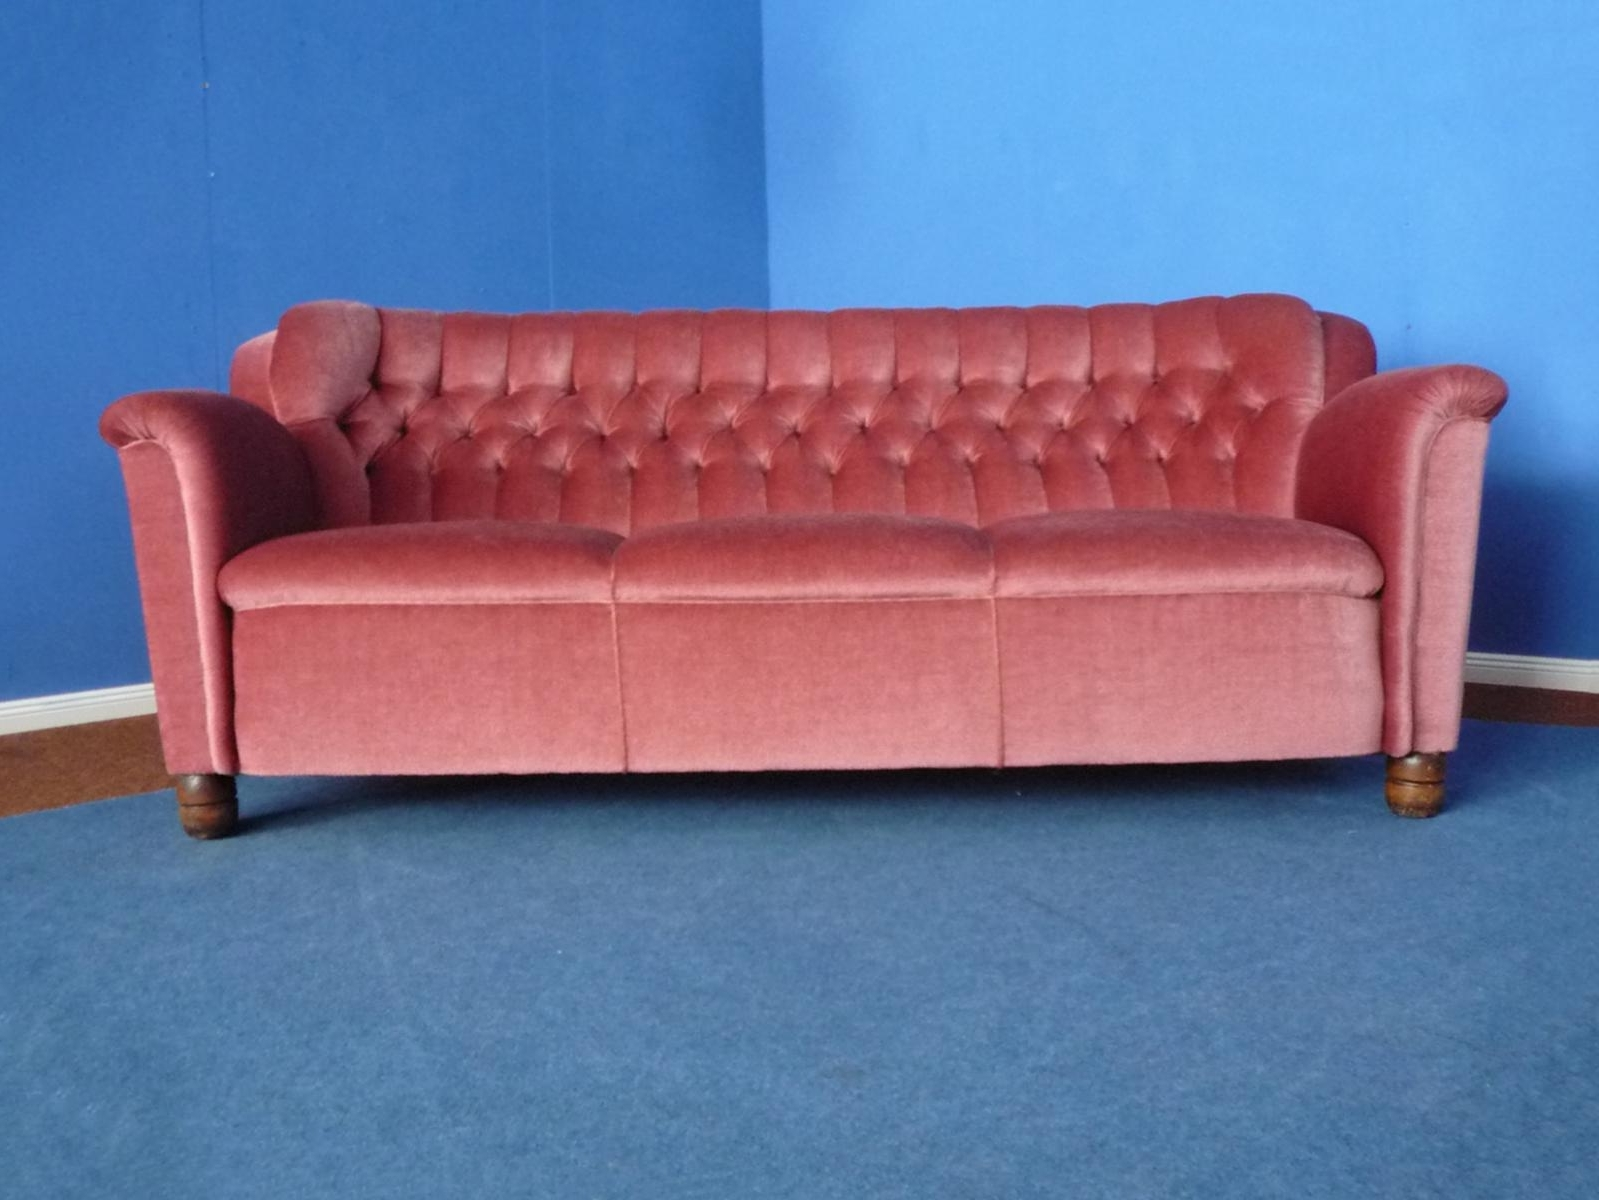 German Sofa, 1930s For Sale At Pamono Inside Most Recently Released 1930s Sofas (View 17 of 20)